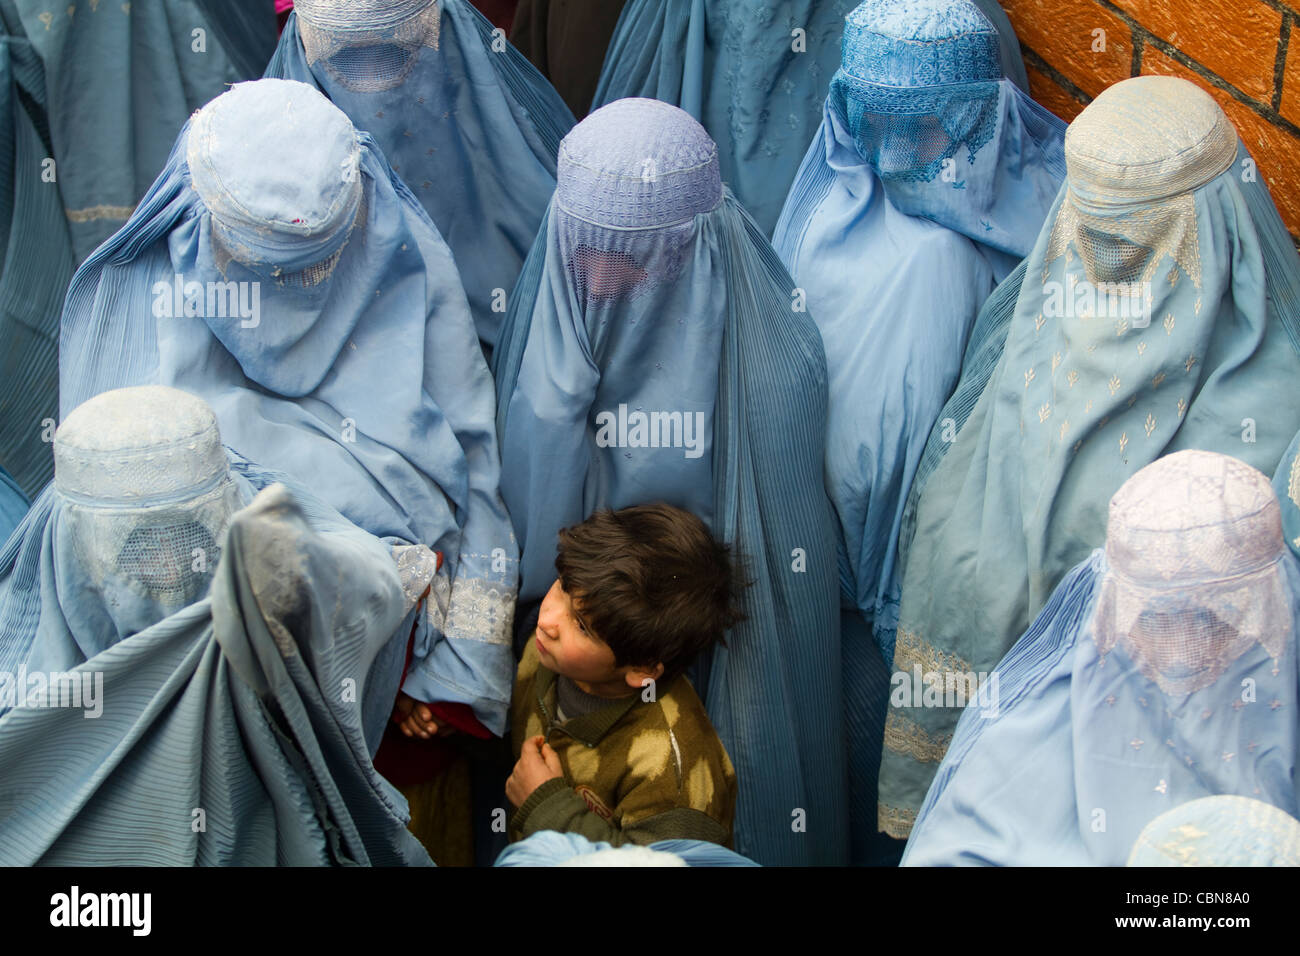 Women in burqa waiting aid for Feast of Sacrifice Kabul Afghanistan - Stock Image